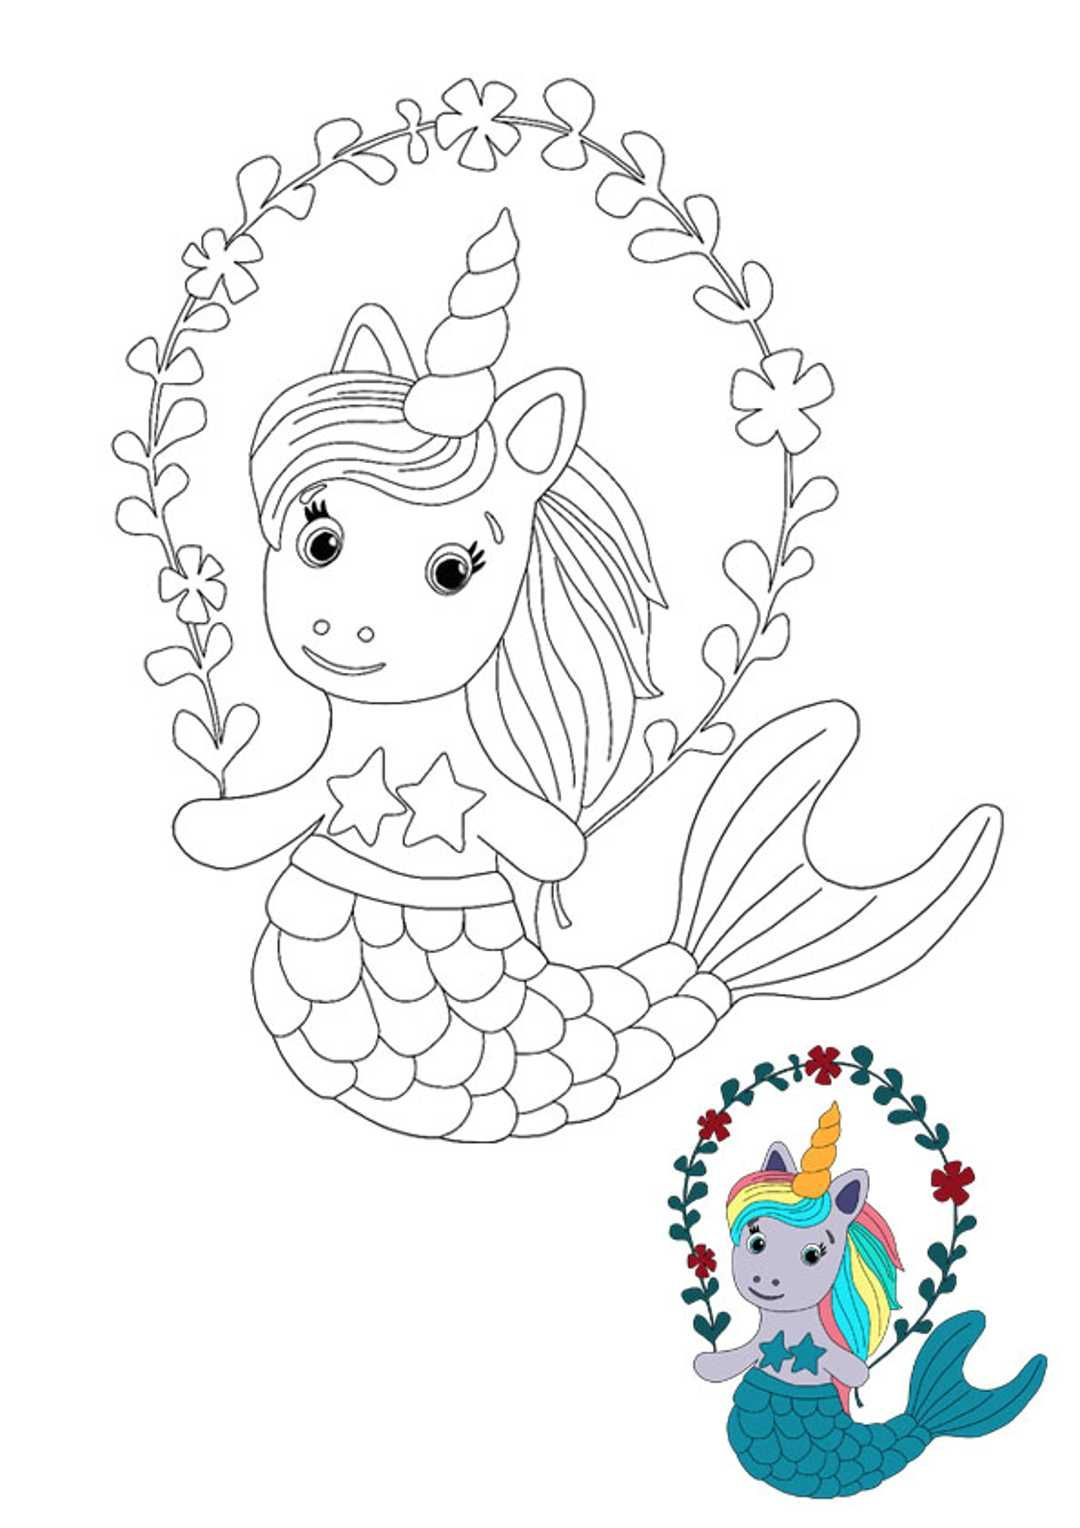 Unicorn Mermaid Coloring Pages Unicorn Coloring Pages Mermaid Coloring Pages Mandala Coloring Pages